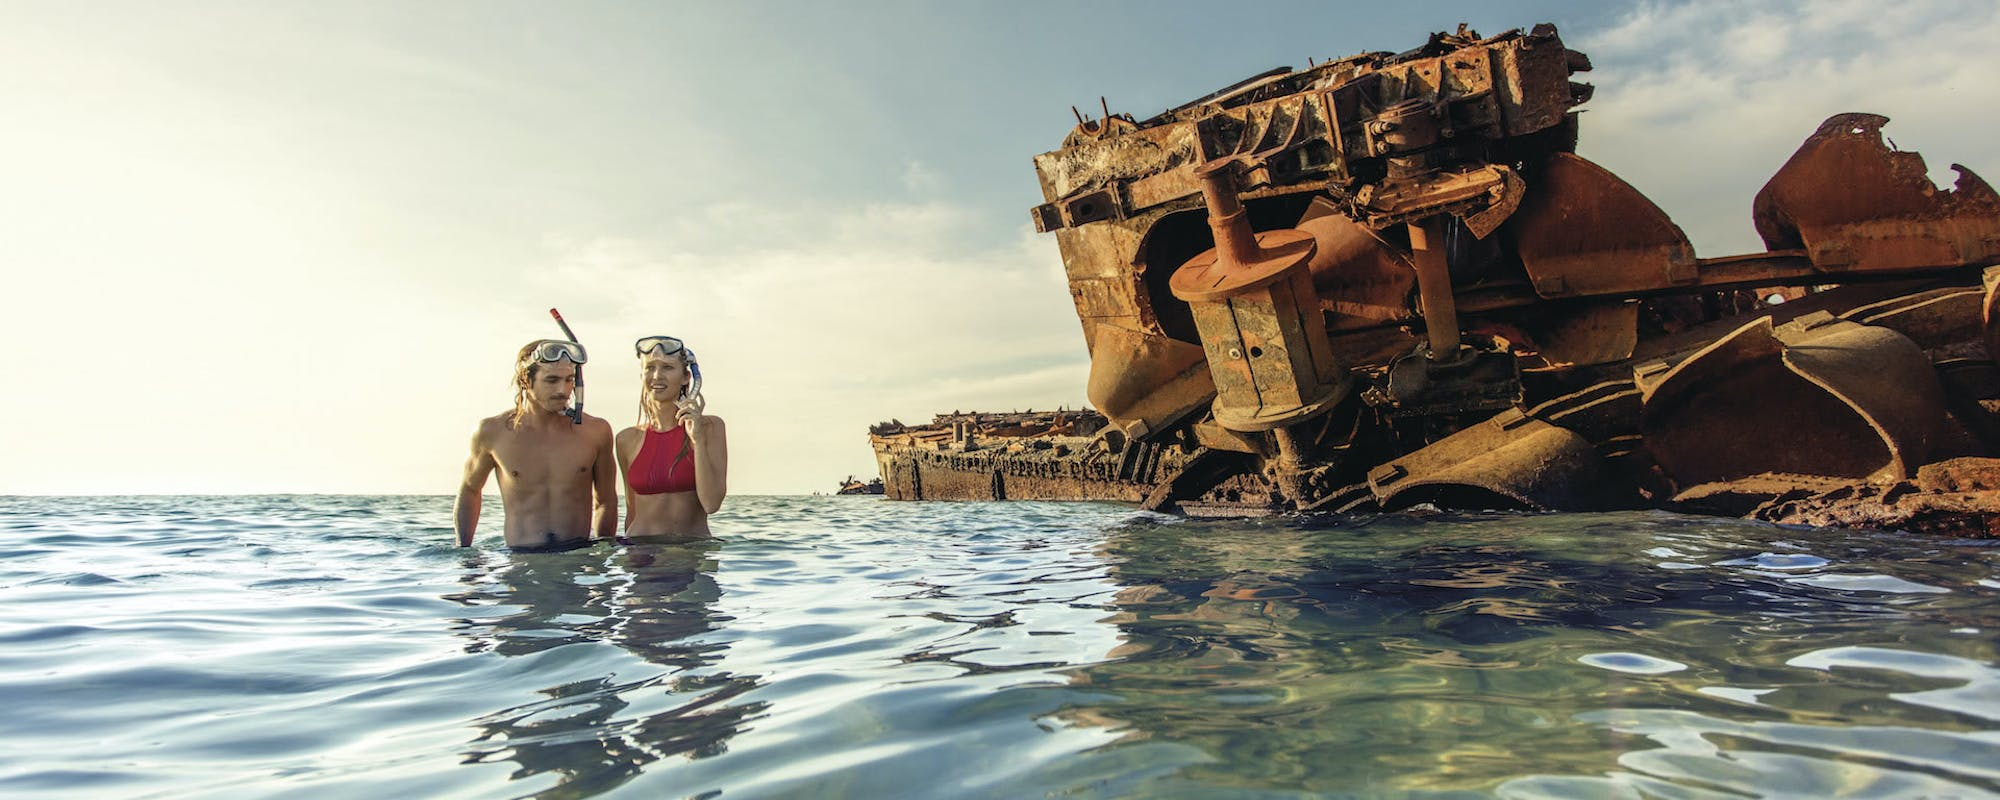 Shipwreck on Moreton Island